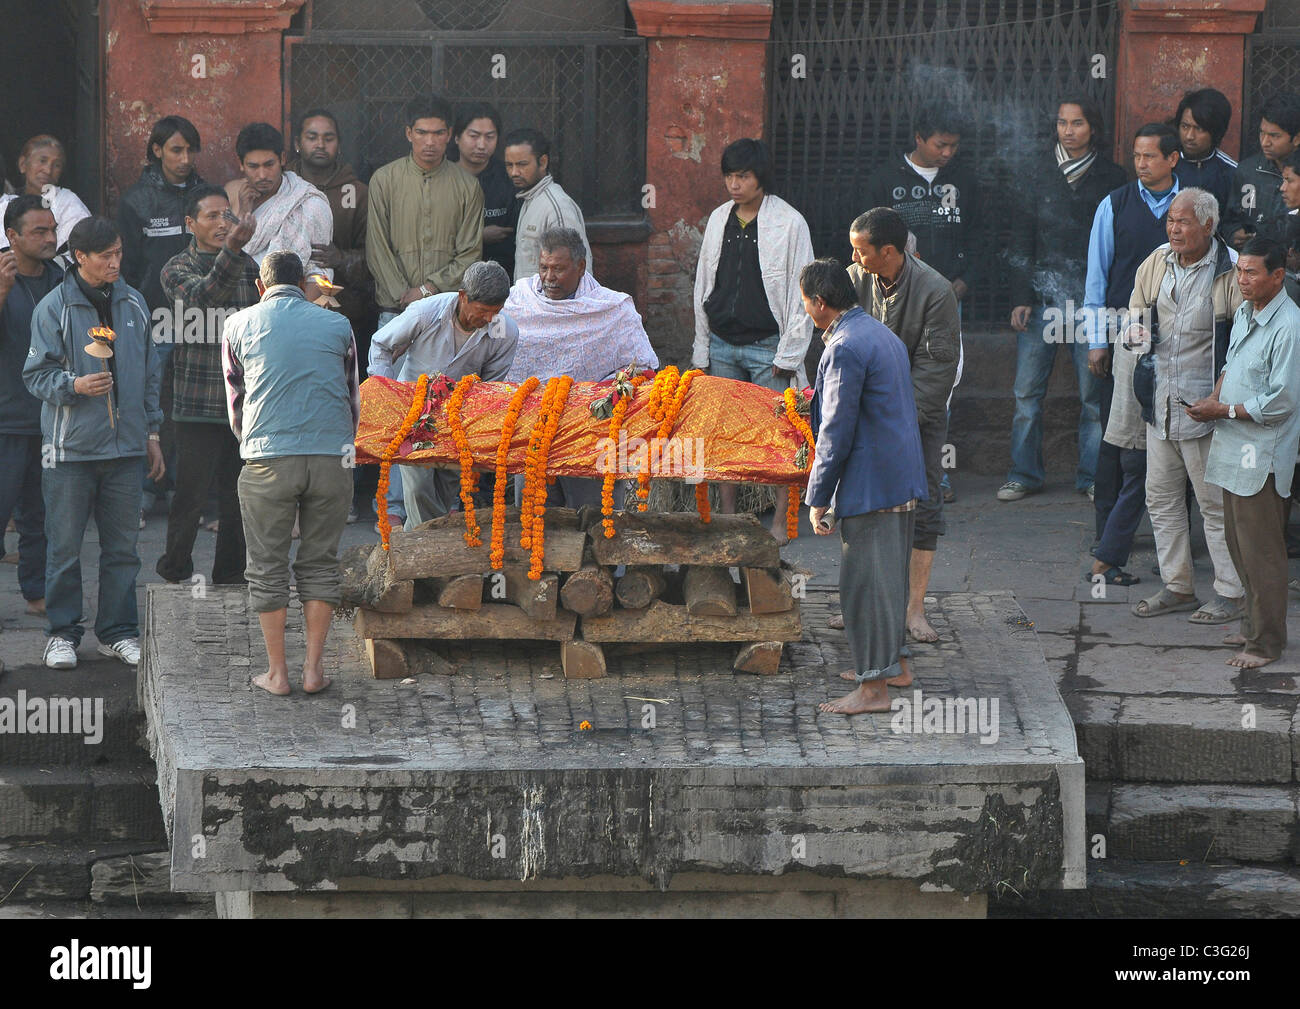 A funeral taking place at the ghats at Pashupatinath temple Kathmandu, Nepal. - Stock Image